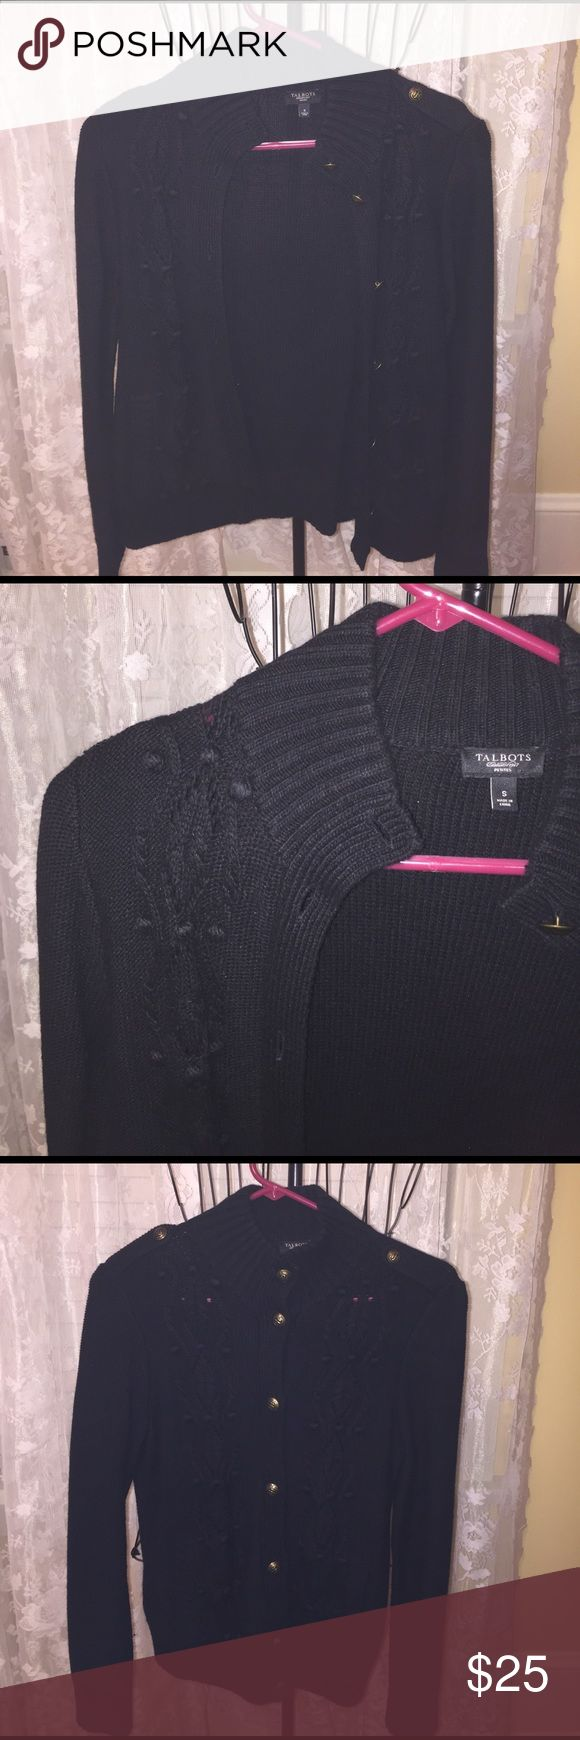 Talbots women's Black petite sweater Beautiful black button up sweater with brass ton buttons. Excellent condition. 33% Viscose, 25% Nylon 18% lambswool and 18% cotton 4% cashmere Handwashable Talbots Sweaters Cardigans